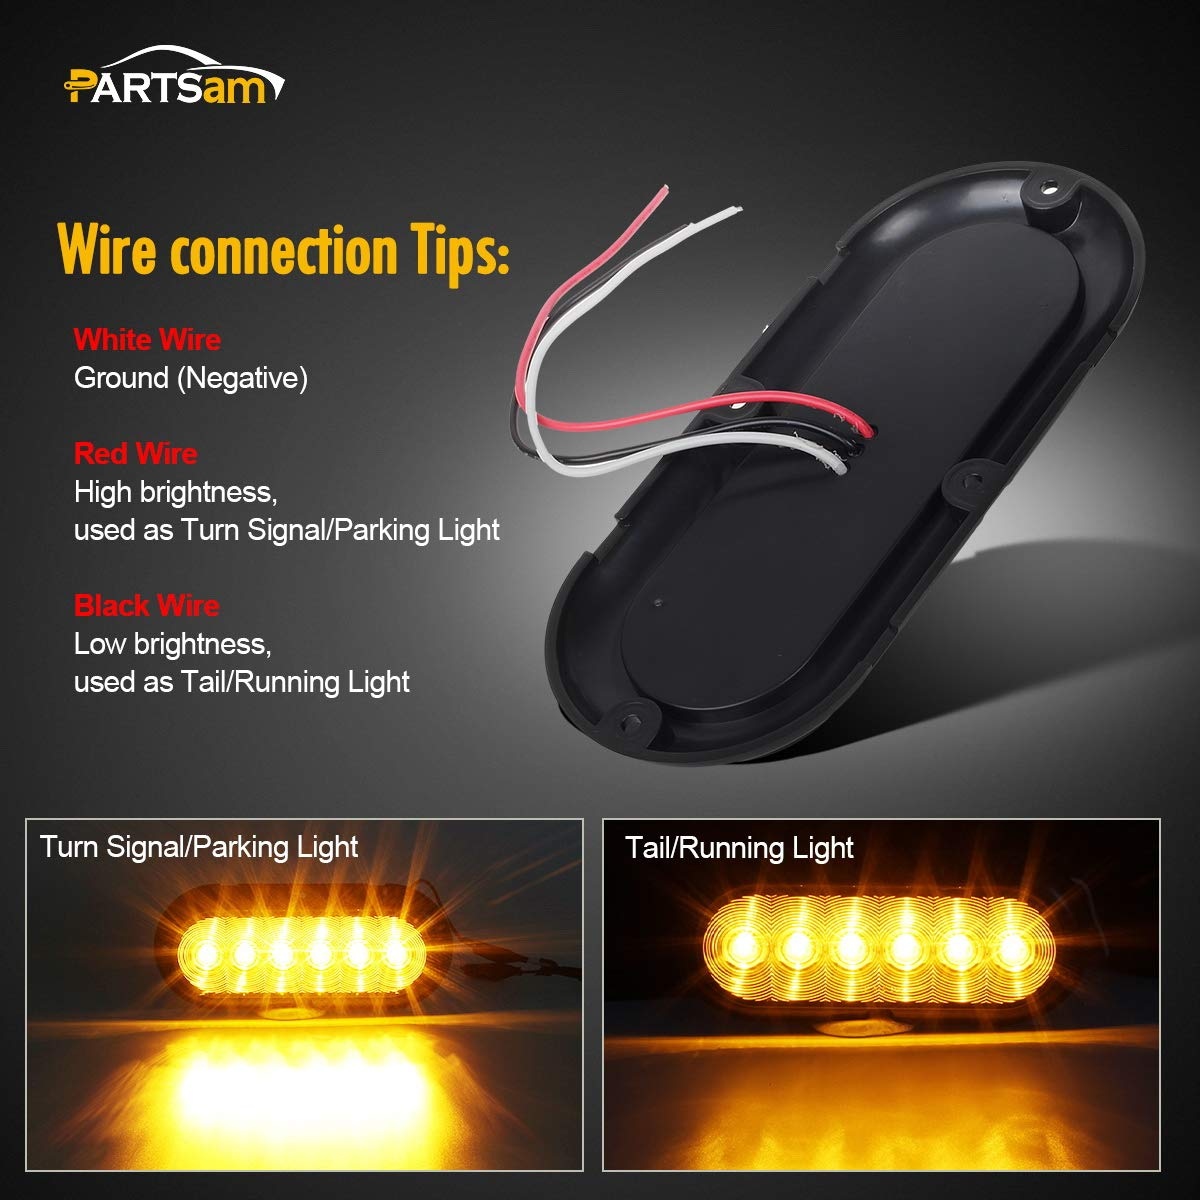 Partsam 6 Inch Oval Amber Lights Smoke Lens Led Wiring A Light Fixture With Red Black And White Wires Surface Mount Smoked Turn Signal Side Marker Tail Parking